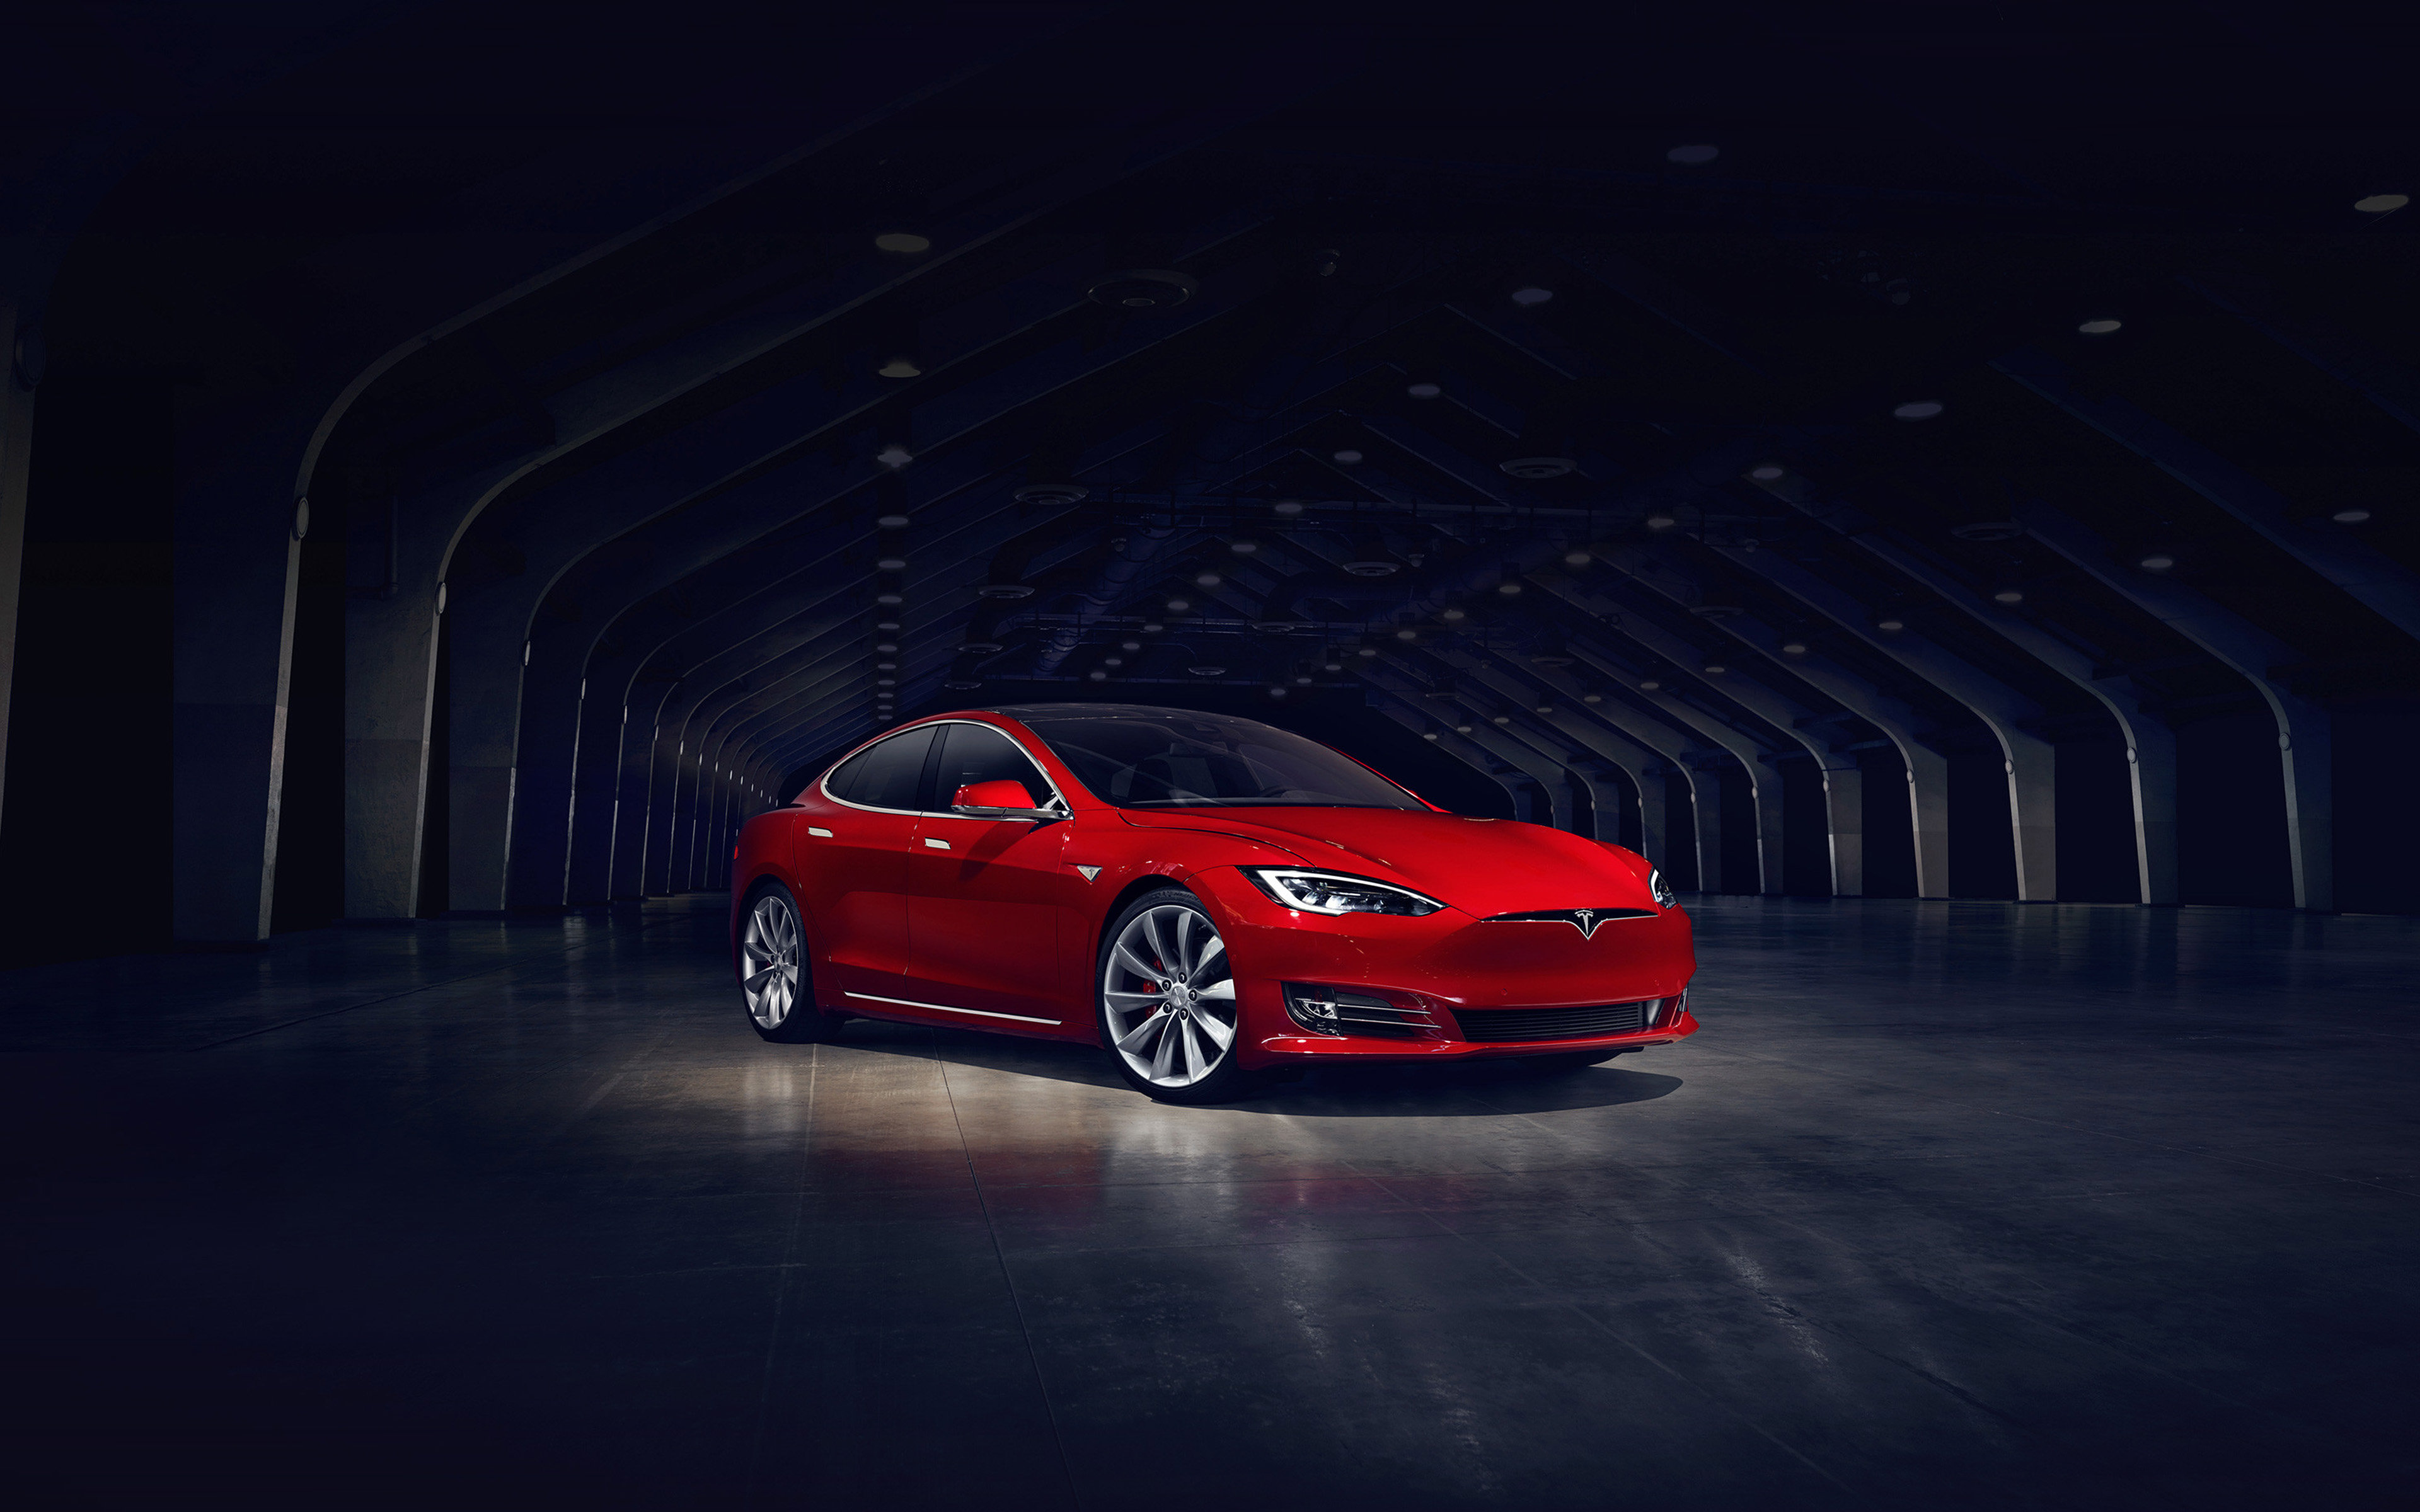 aq53-tesla-model-red-car-wallpaper